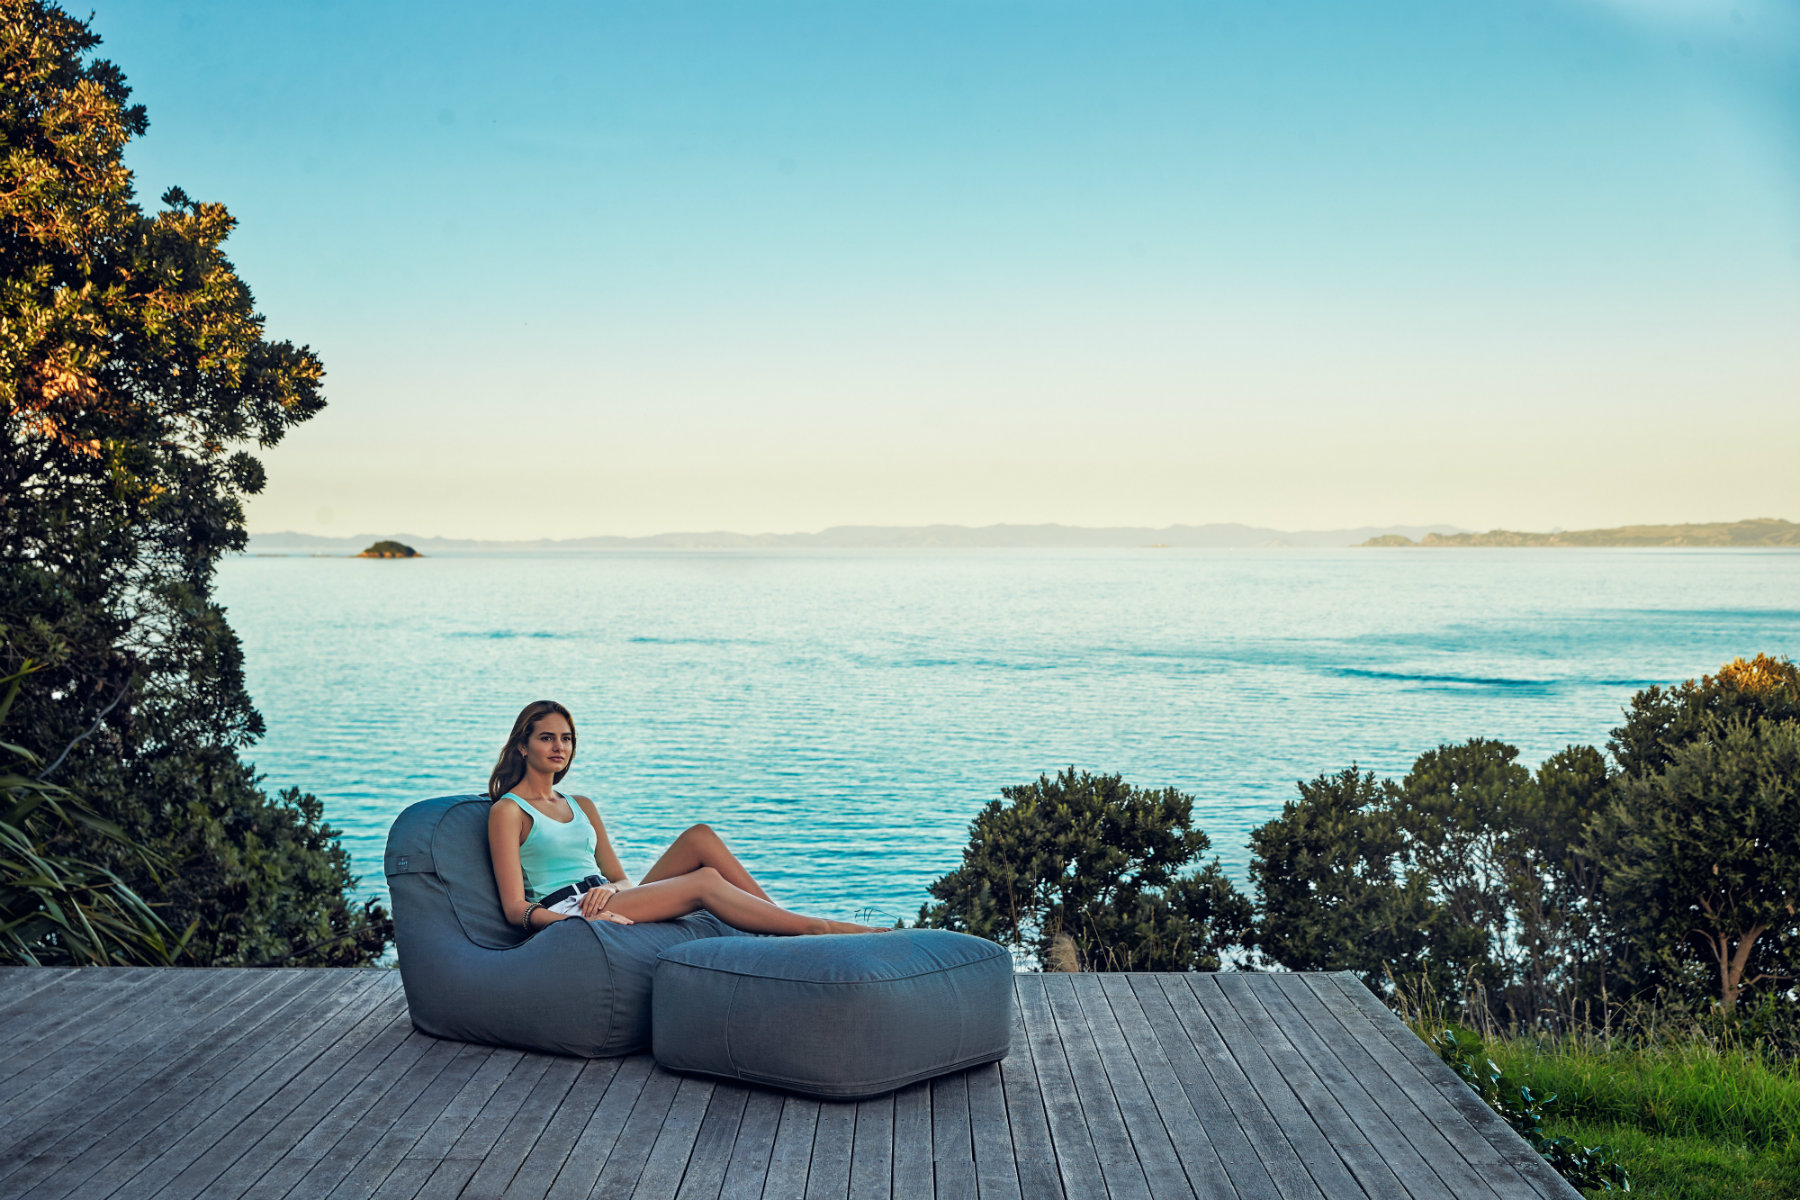 Coast new zealand luxury outdoor beanbags canvas luggage natural textiles leather accessories